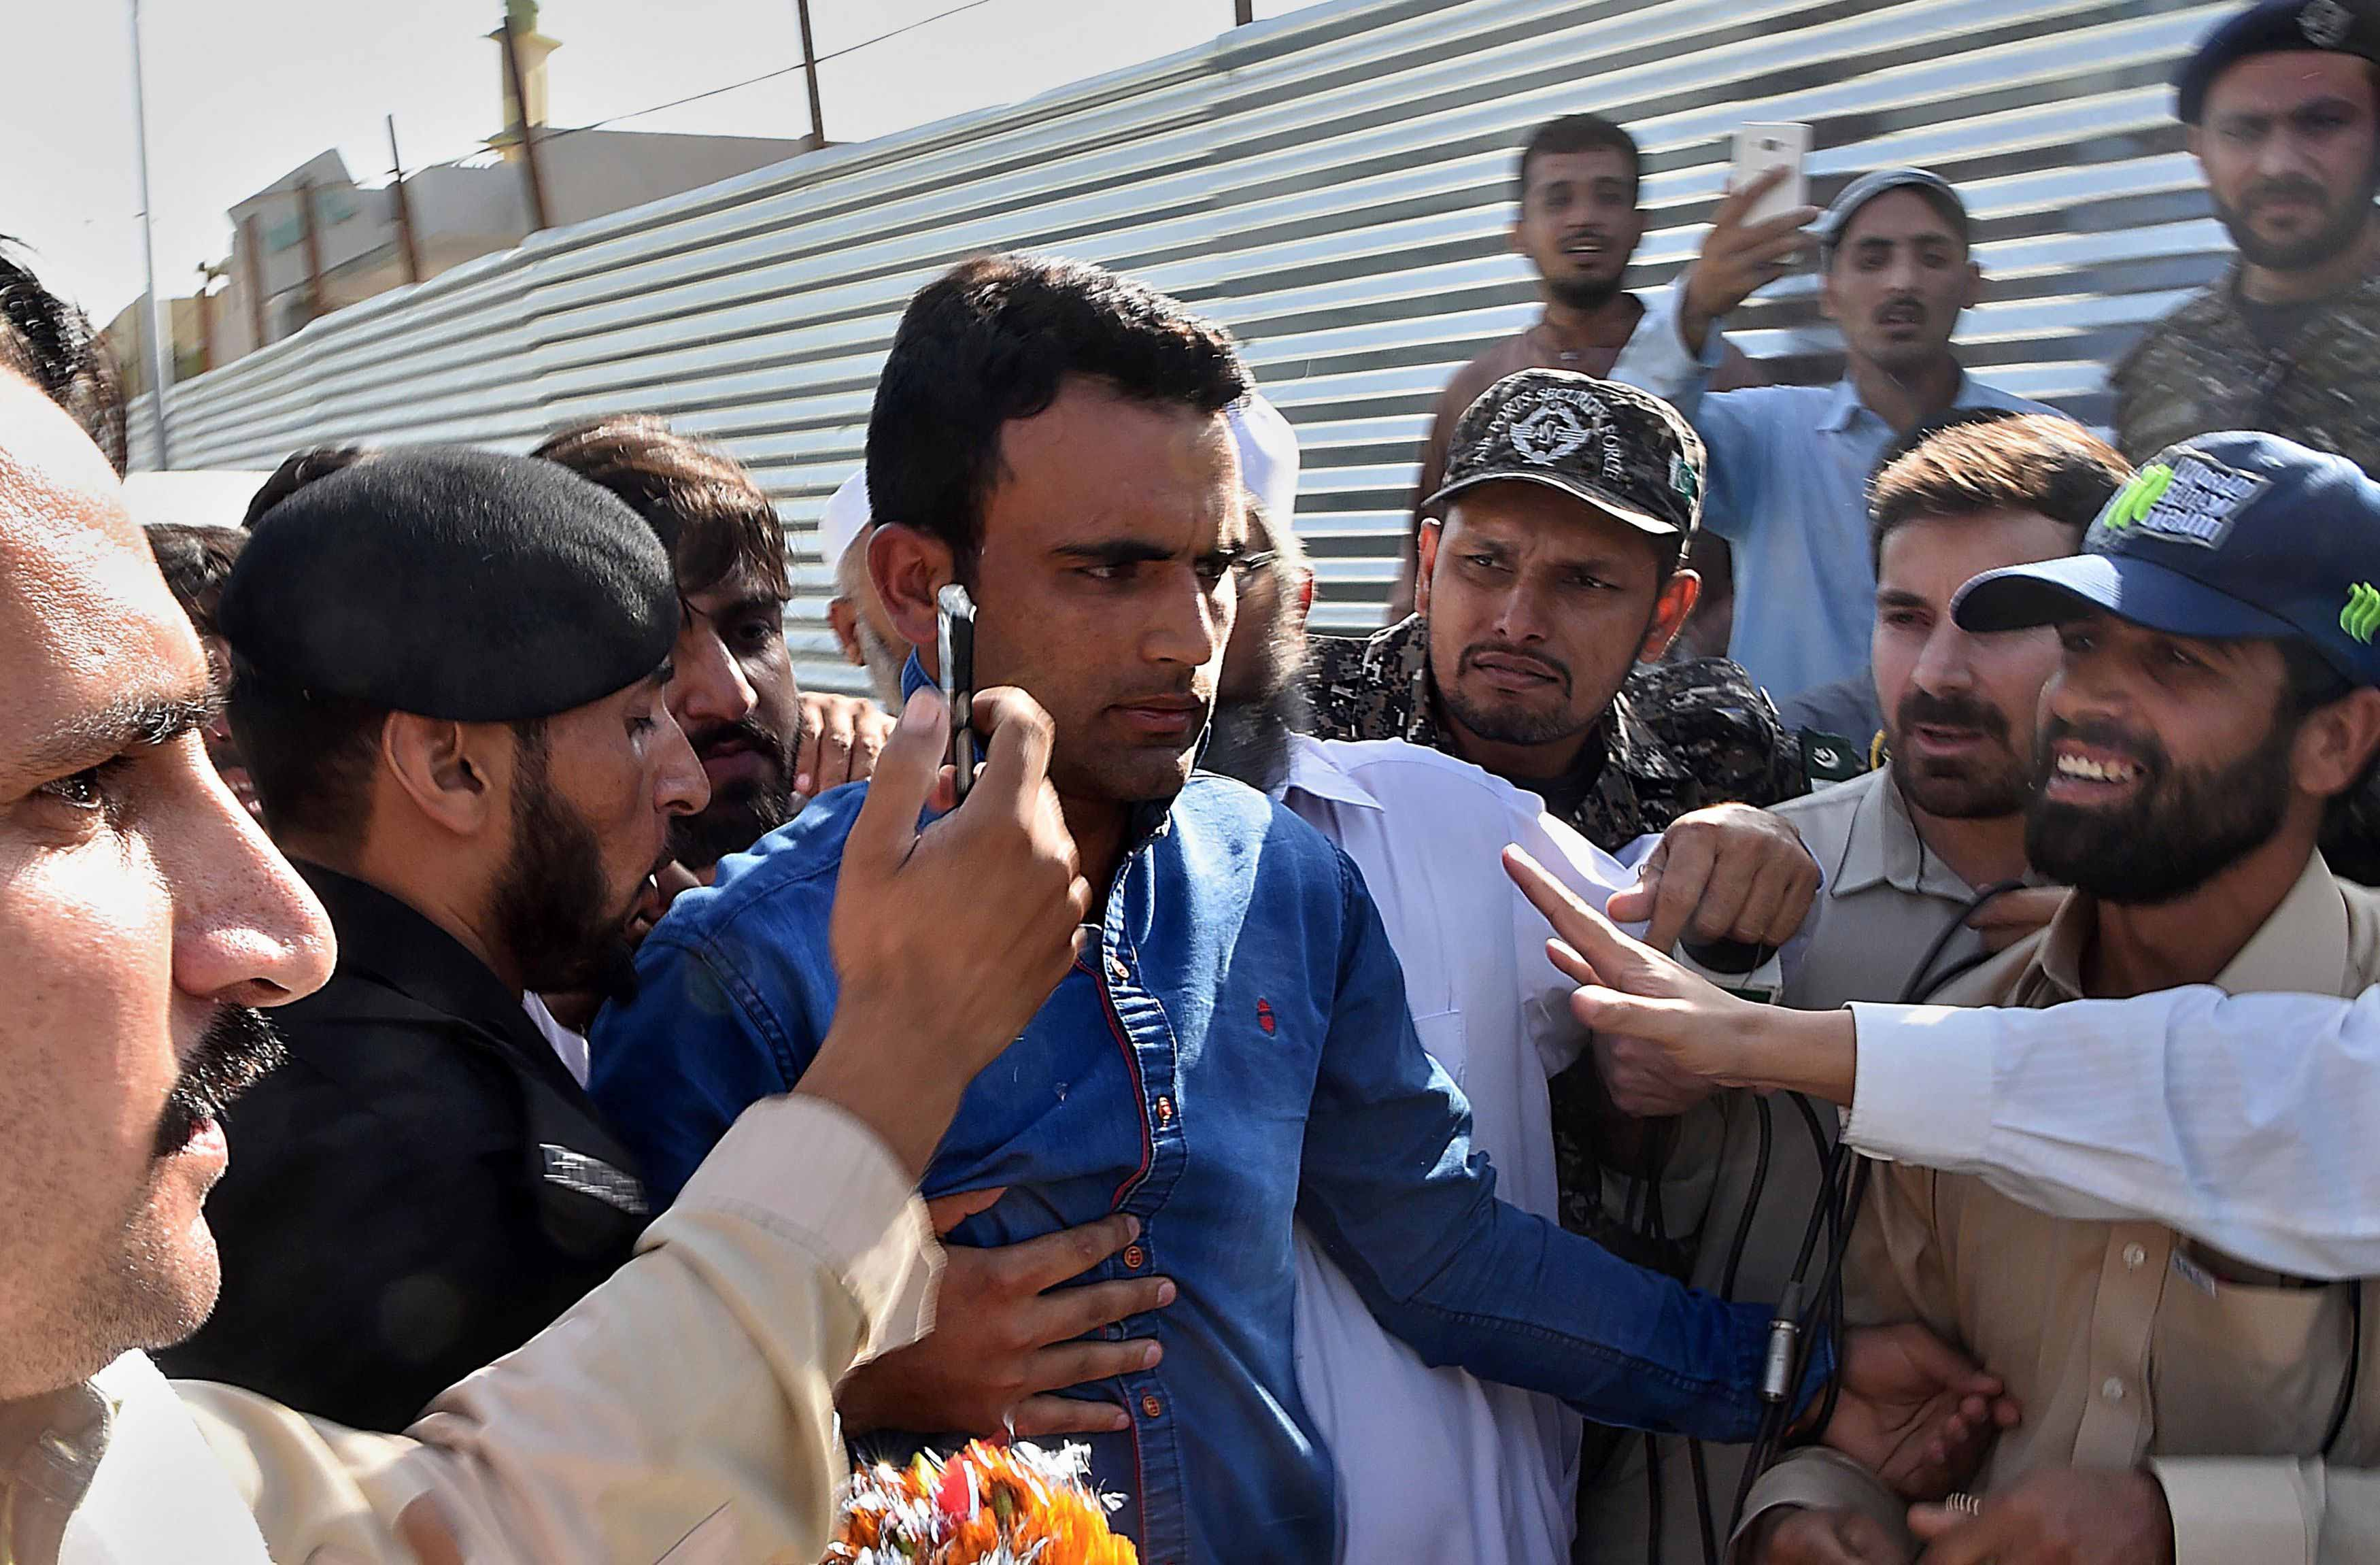 Fakhar Zaman (C) is surrounded by fans as he arrives from London outside the Bacha Khan International airport in Peshawar.